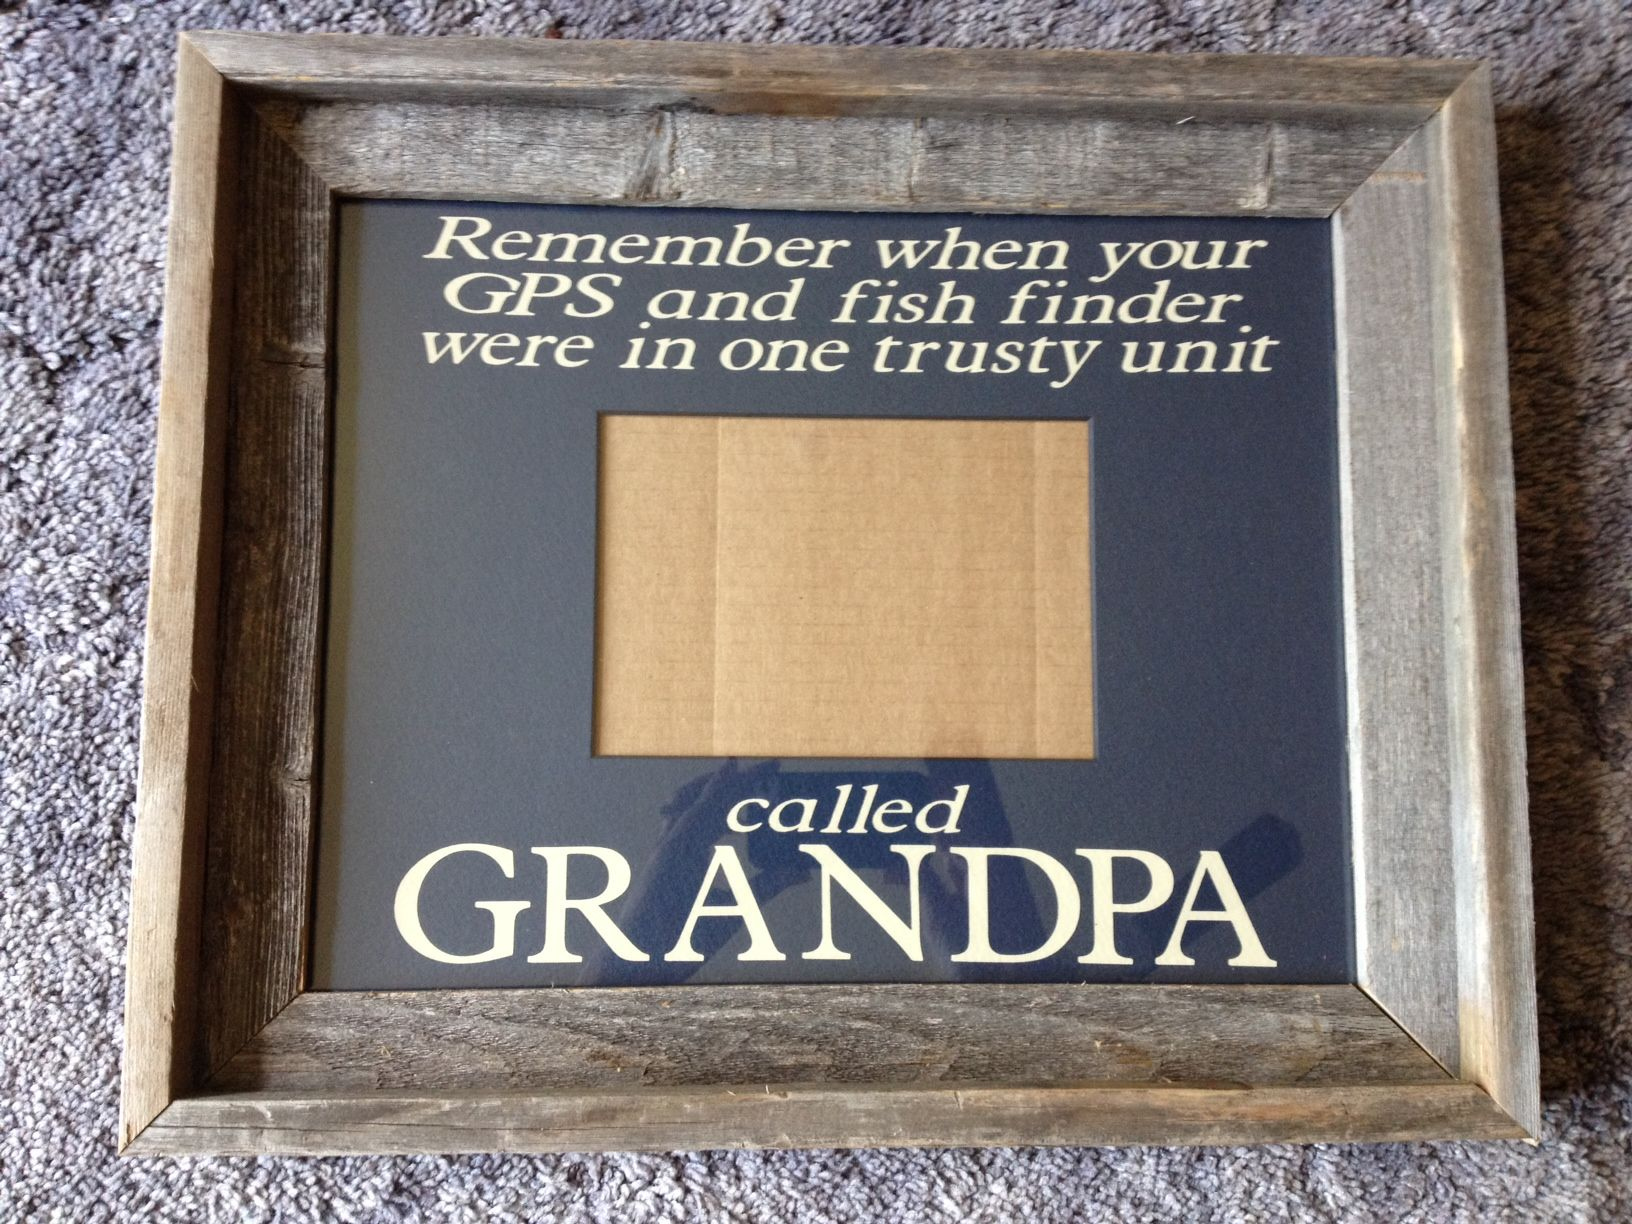 I did this frame for my grandpas 80th birthday barn wood frame i did this frame for my grandpas birthday barn wood frame with custom cut mat embellished with vinyl lettering cut from my cricut using plantin jeuxipadfo Choice Image